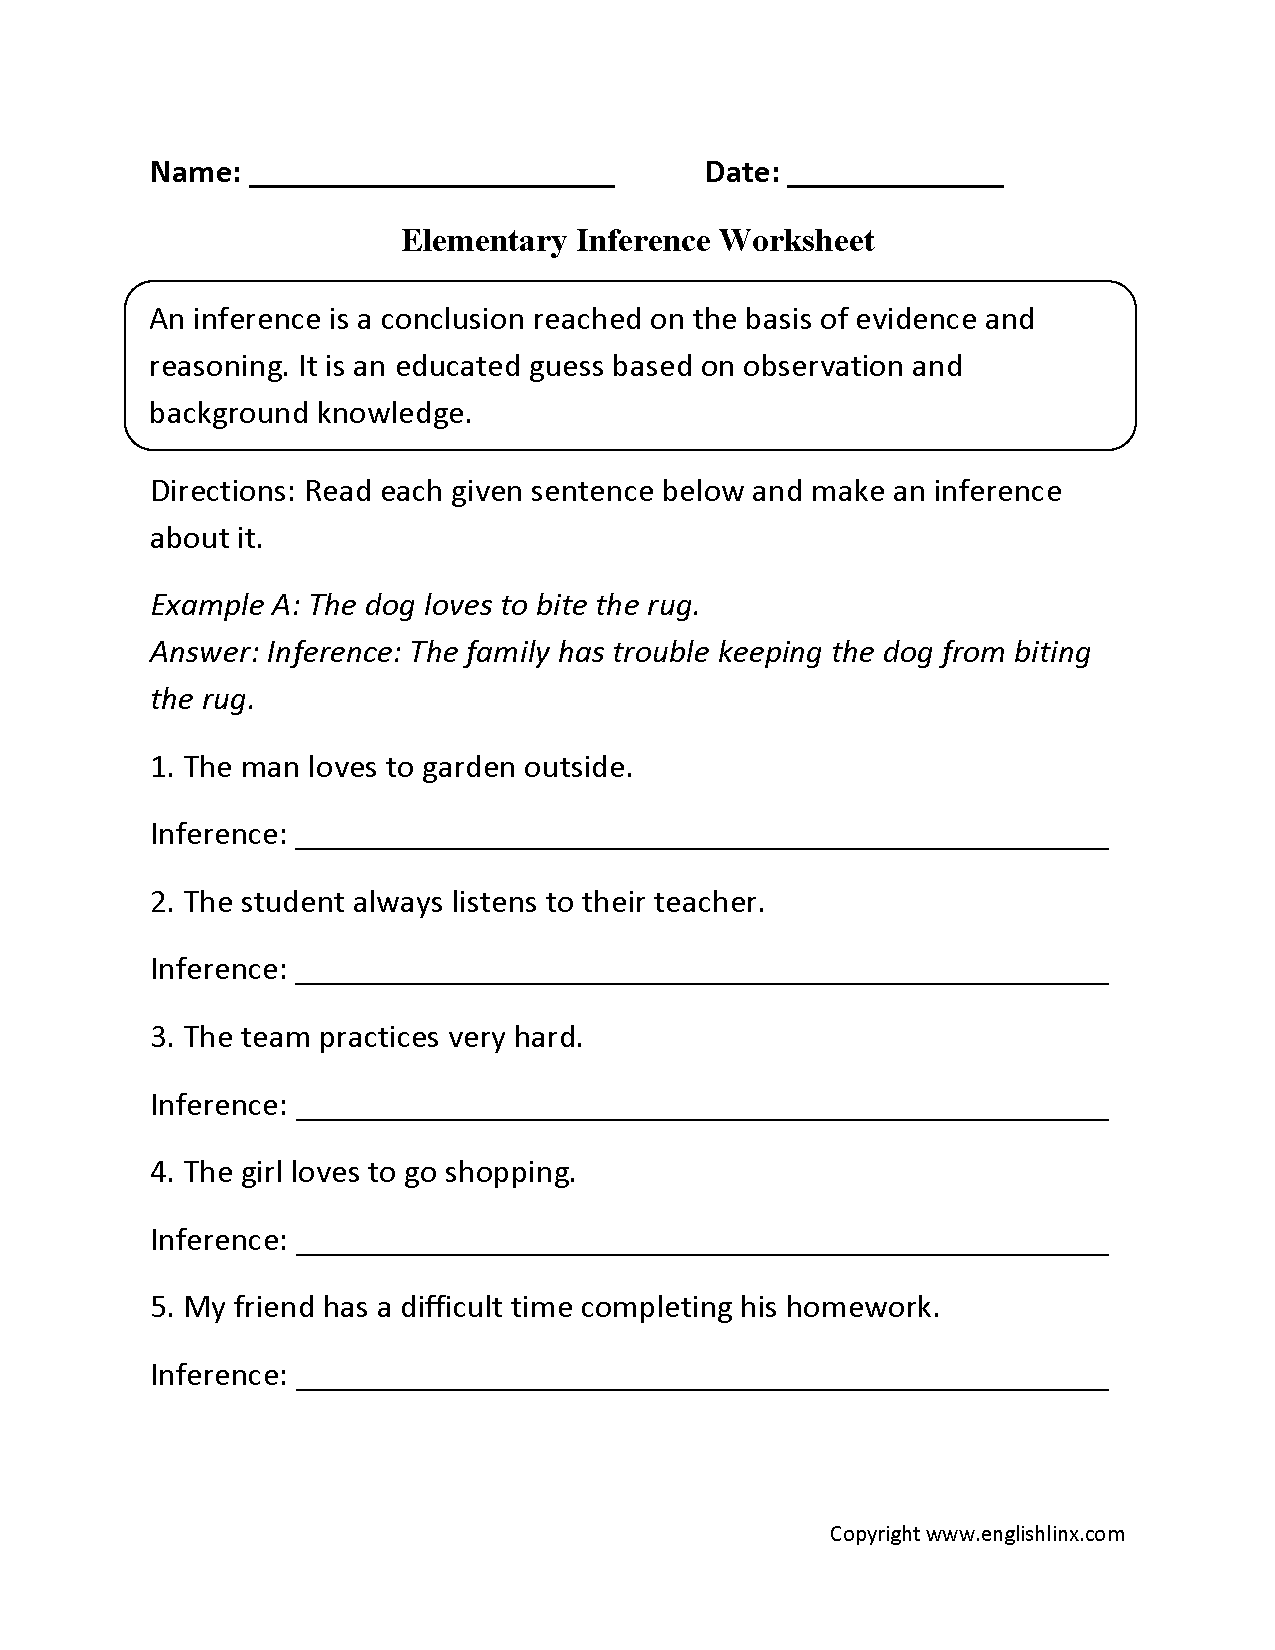 Free Worksheet Inference Worksheets reading worksheets inference worksheets